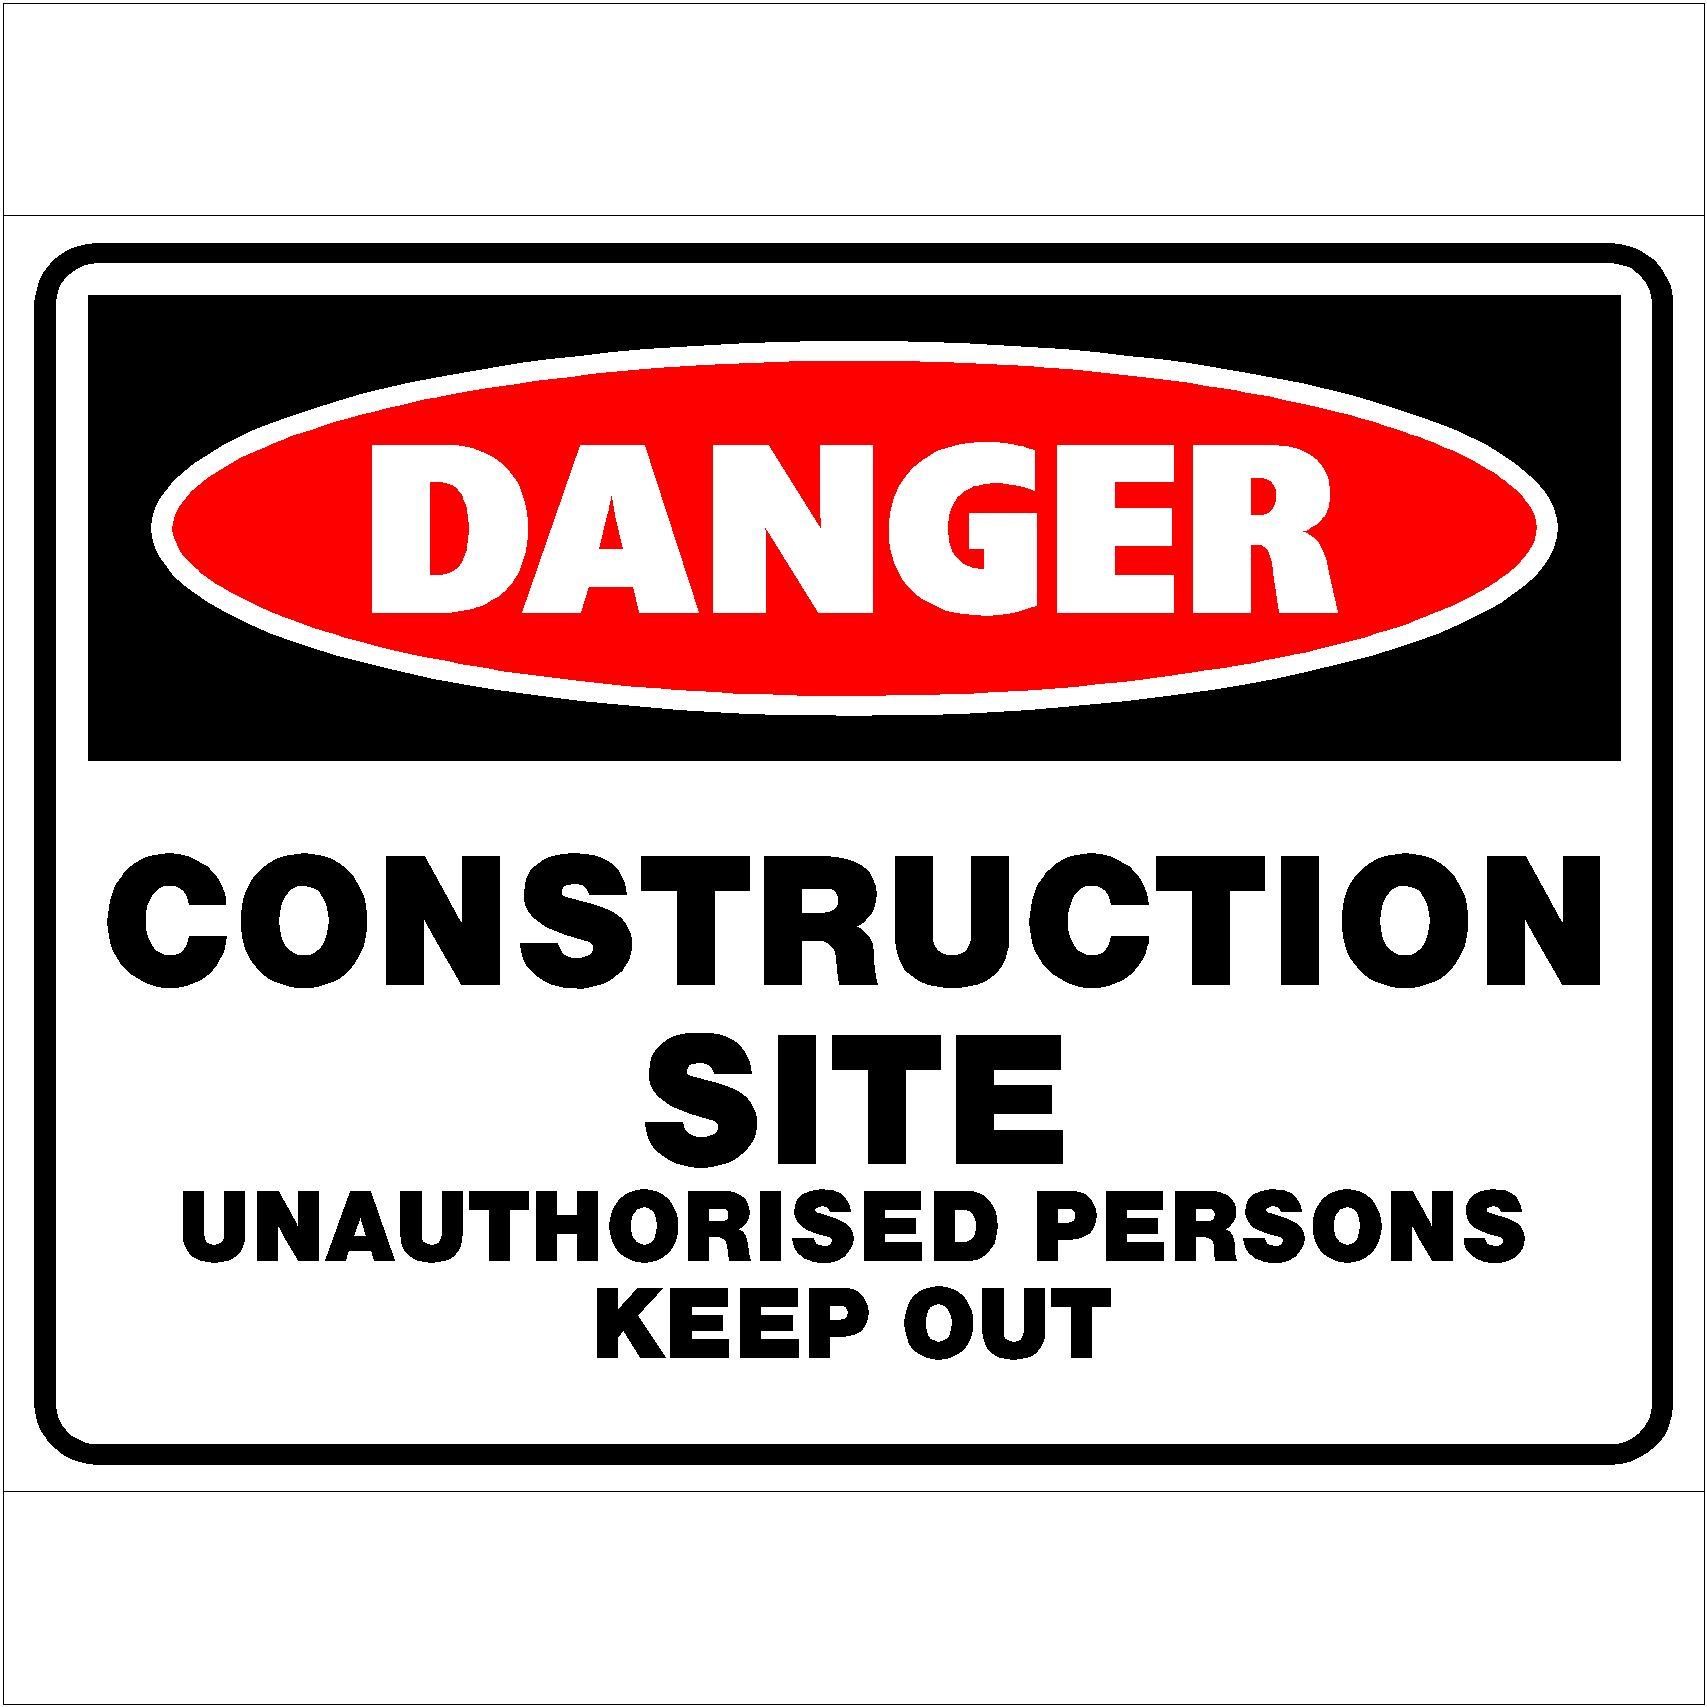 Danger Construction Site